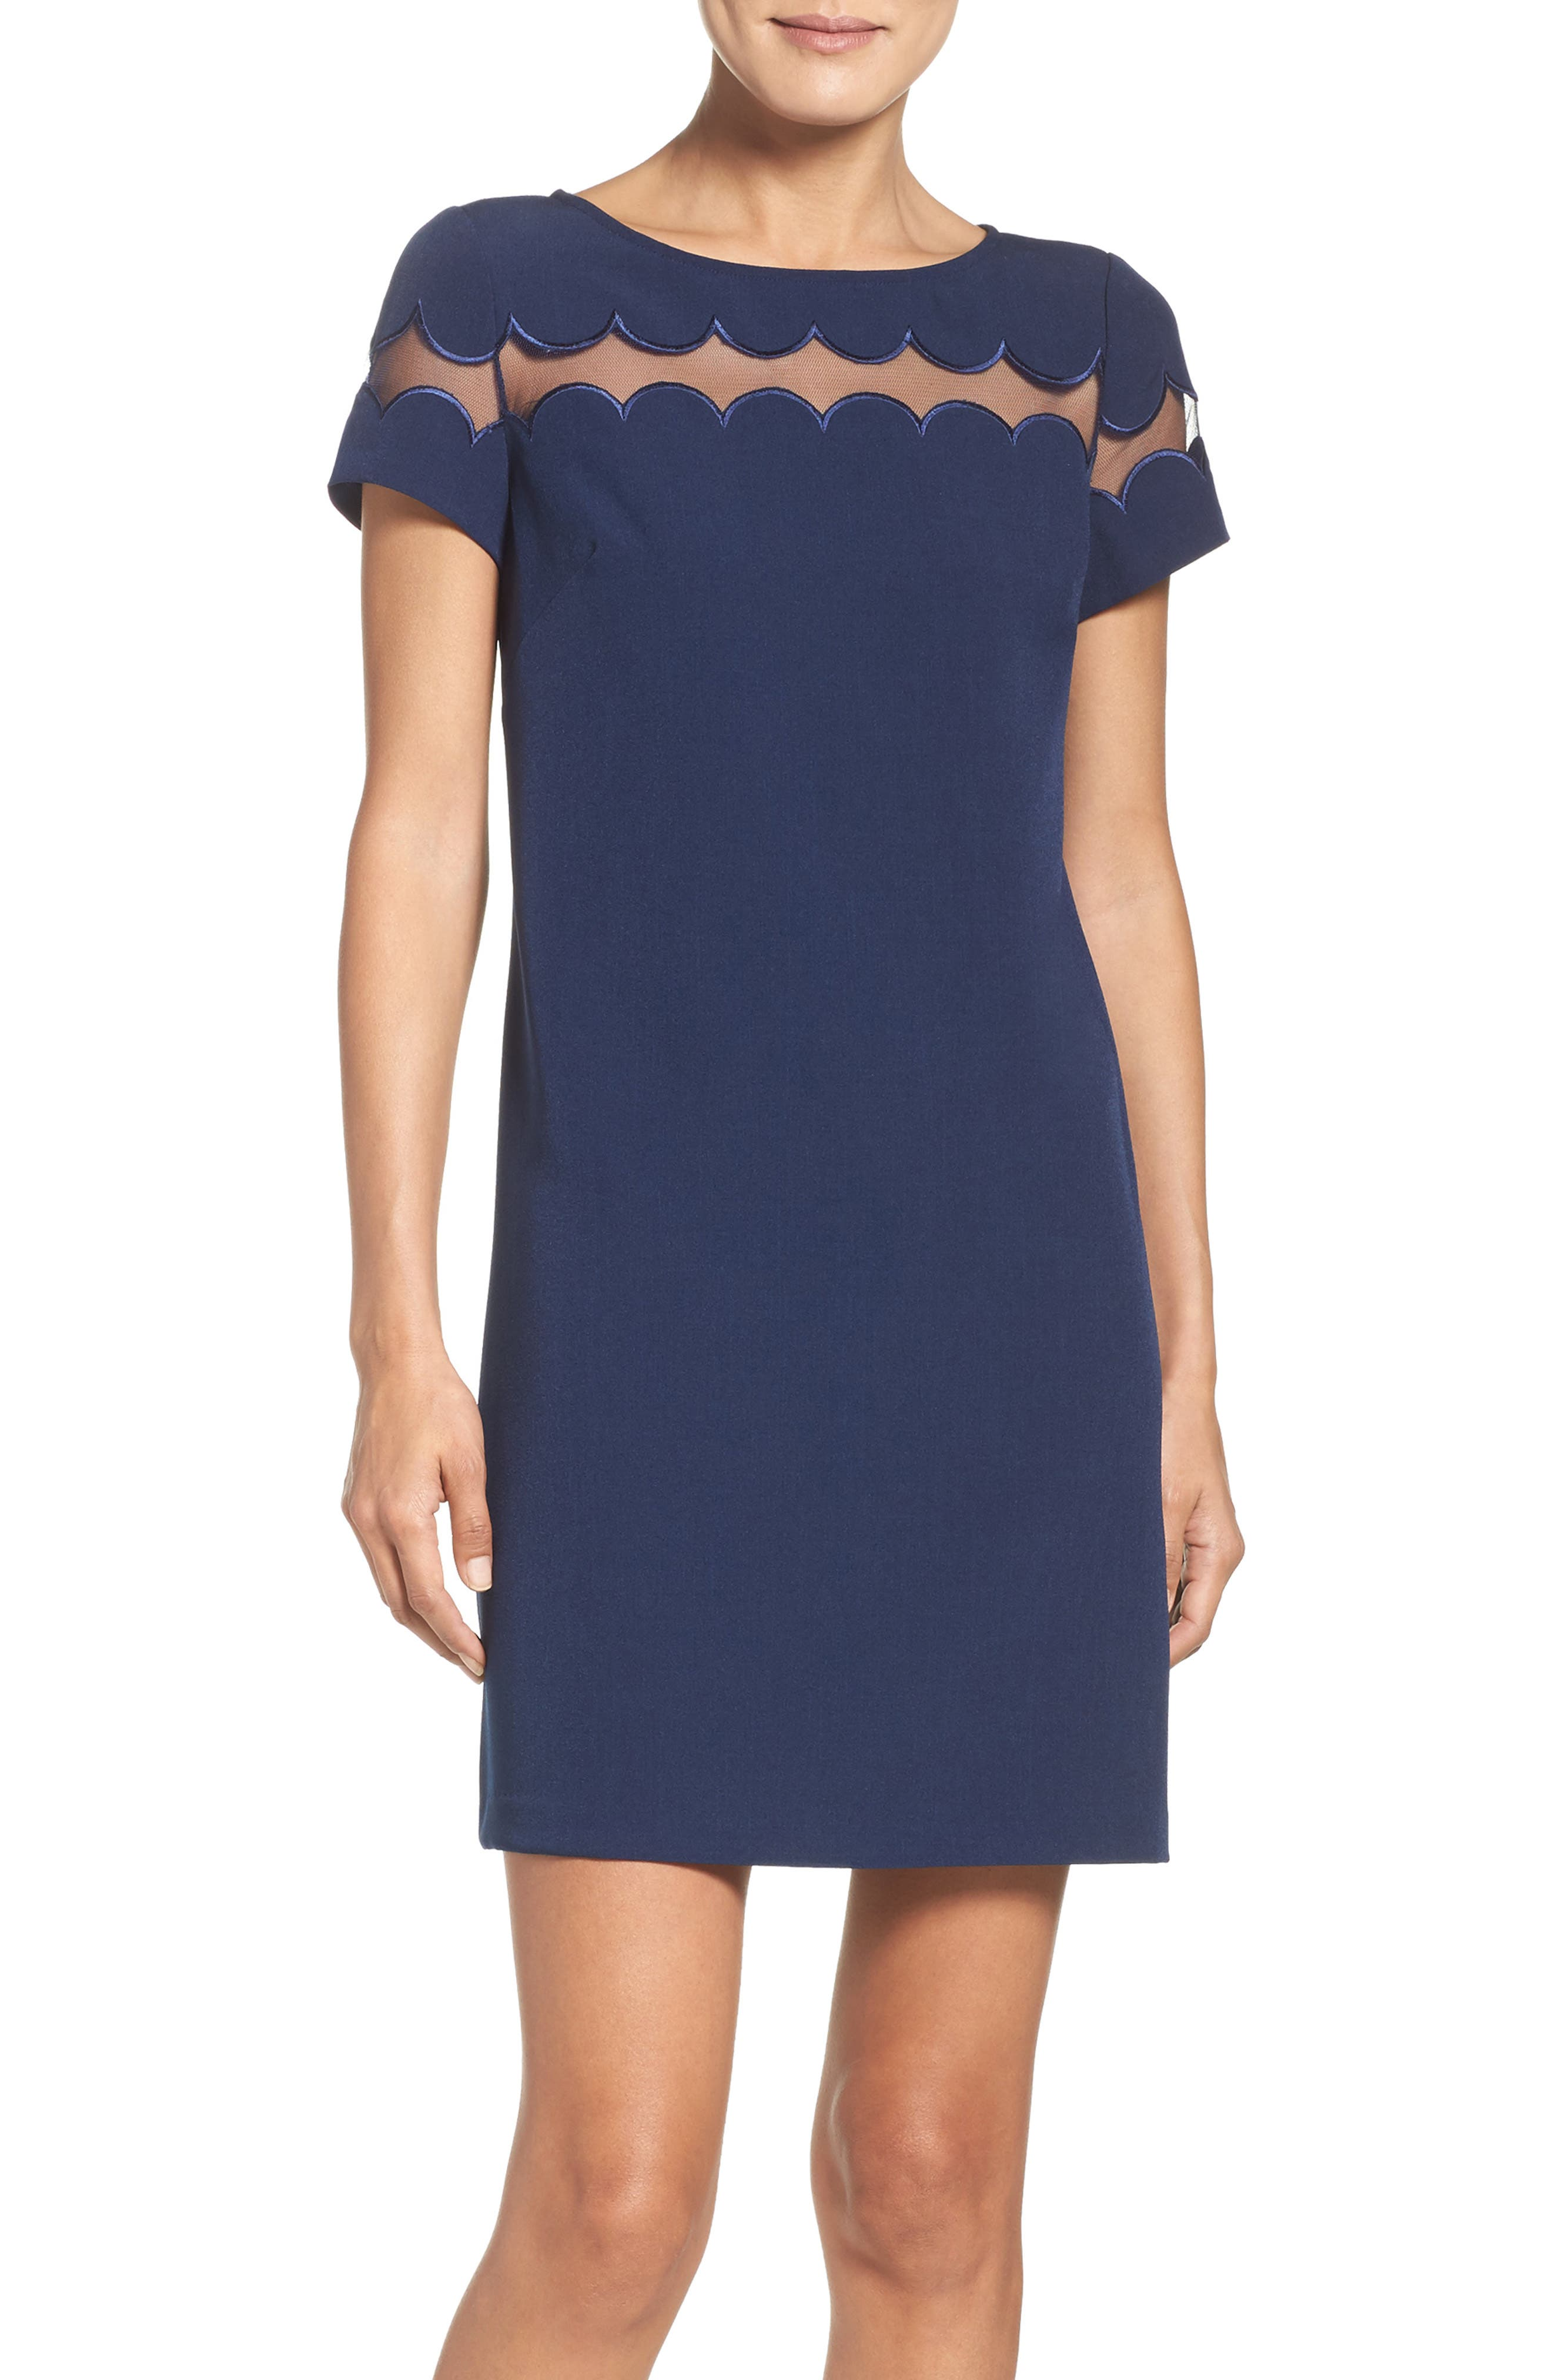 Alternate Image 1 Selected - Adrianna Papell Scallop Inset Crepe Sheath Dress